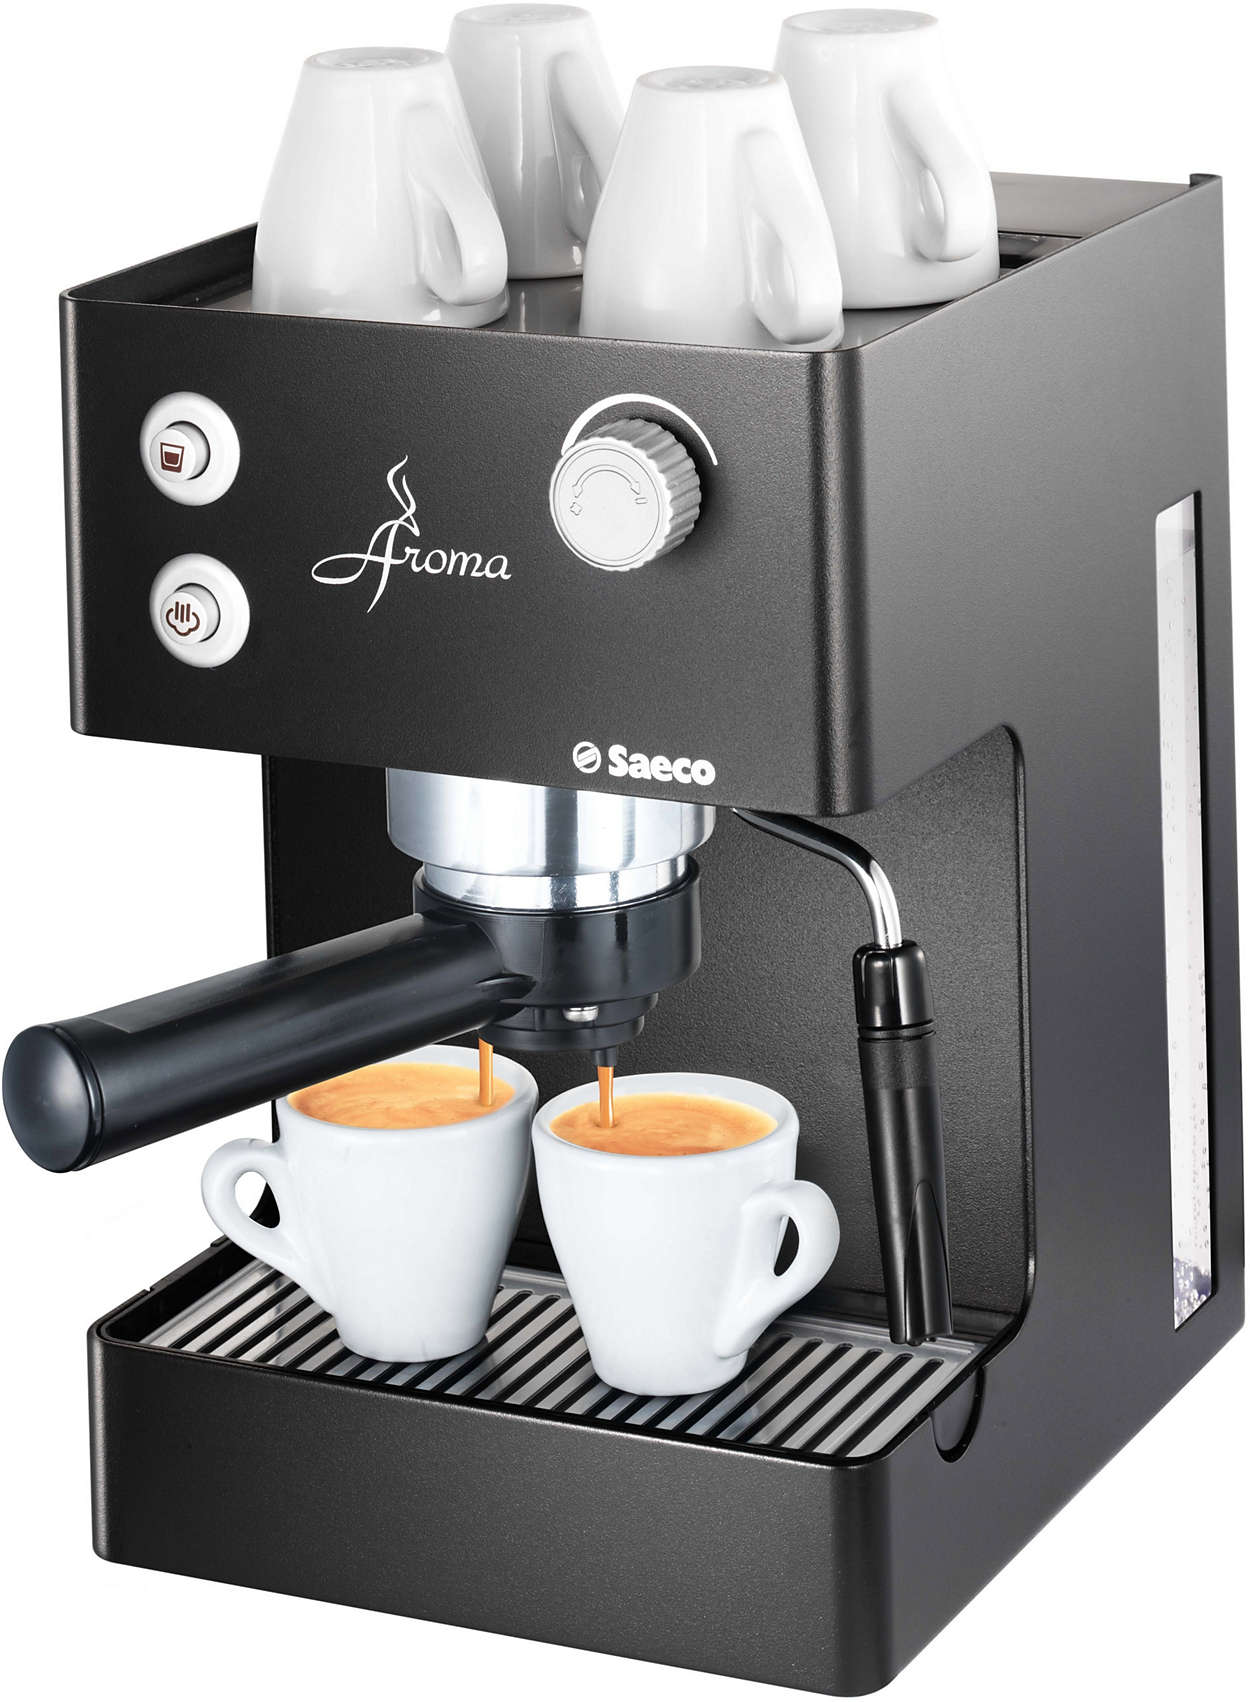 philips saeco aroma noir machine a caf creative coffee. Black Bedroom Furniture Sets. Home Design Ideas